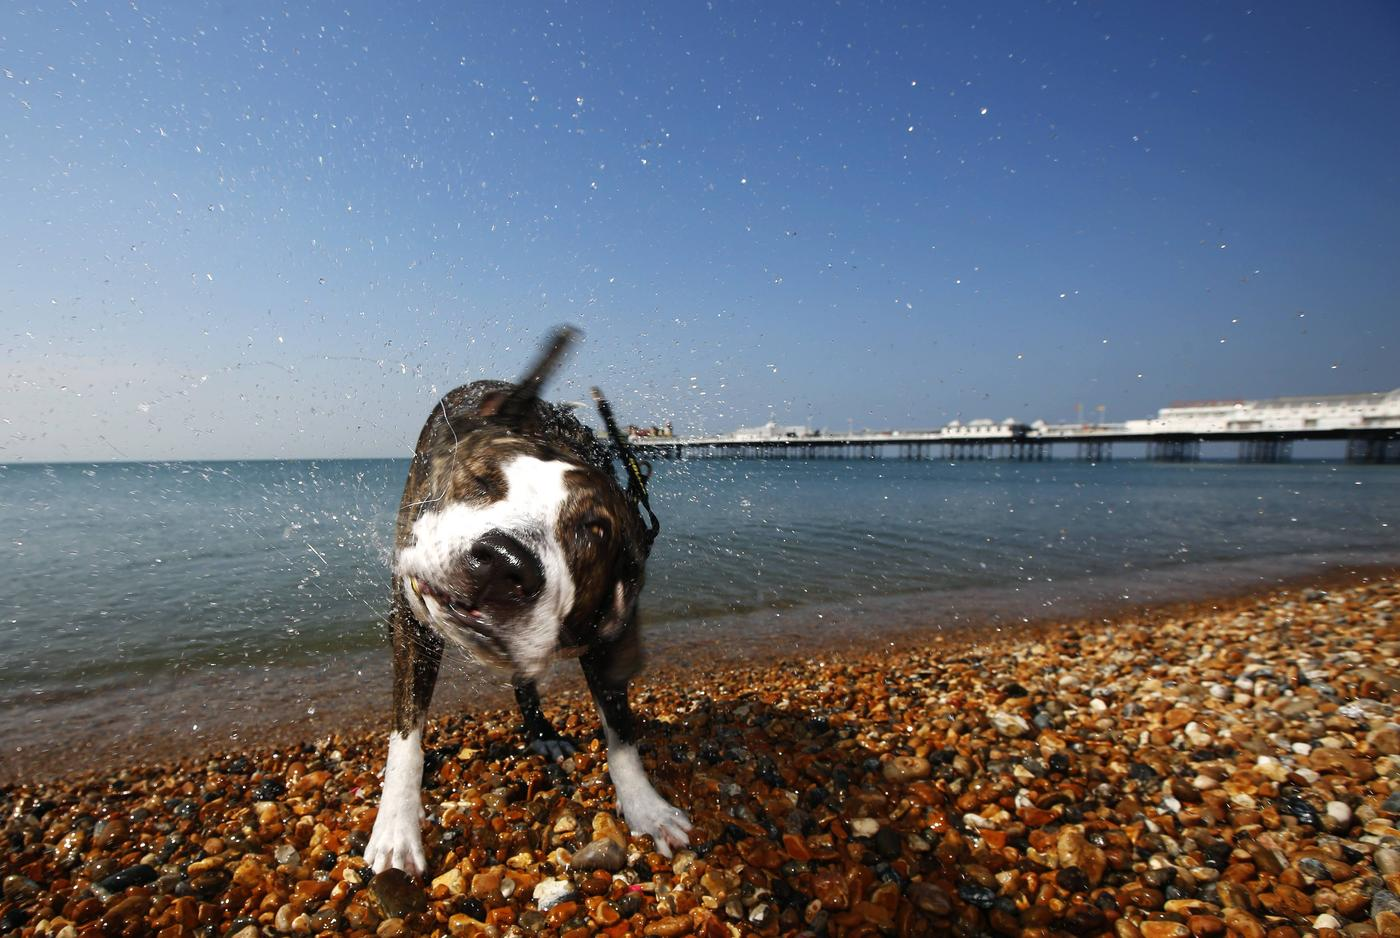 Tosta, a Staffordshire bull terrier cross, shakes off water after a swim in the sea during the hot summer weather by Brighton pier in southern England